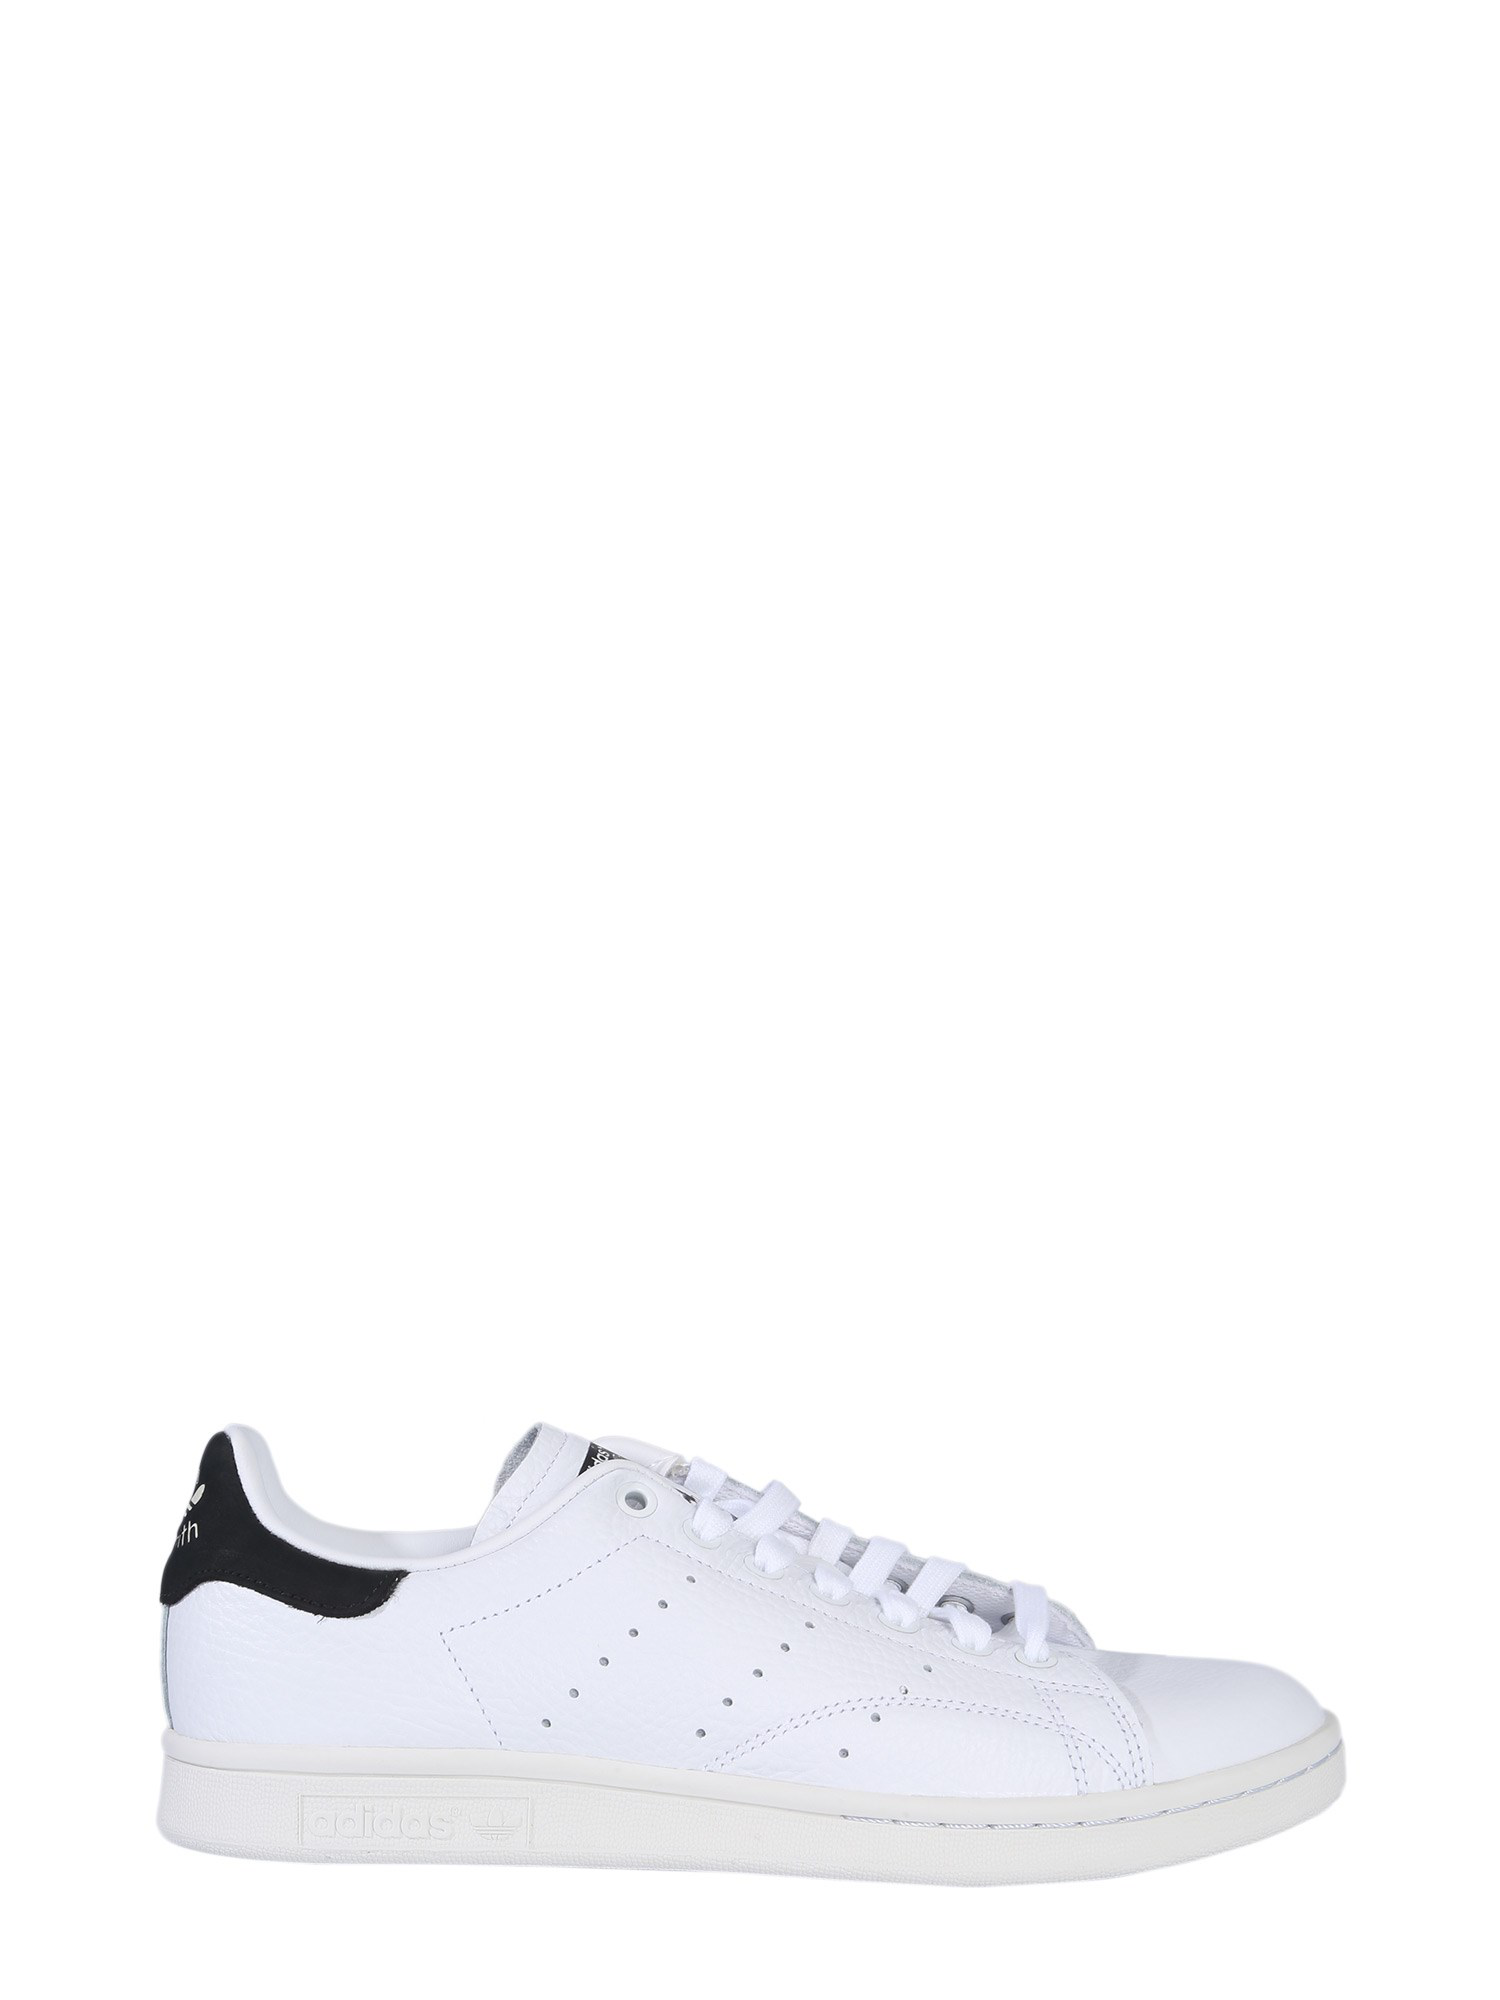 Adidas Originals Stan Smith Sneakers In White